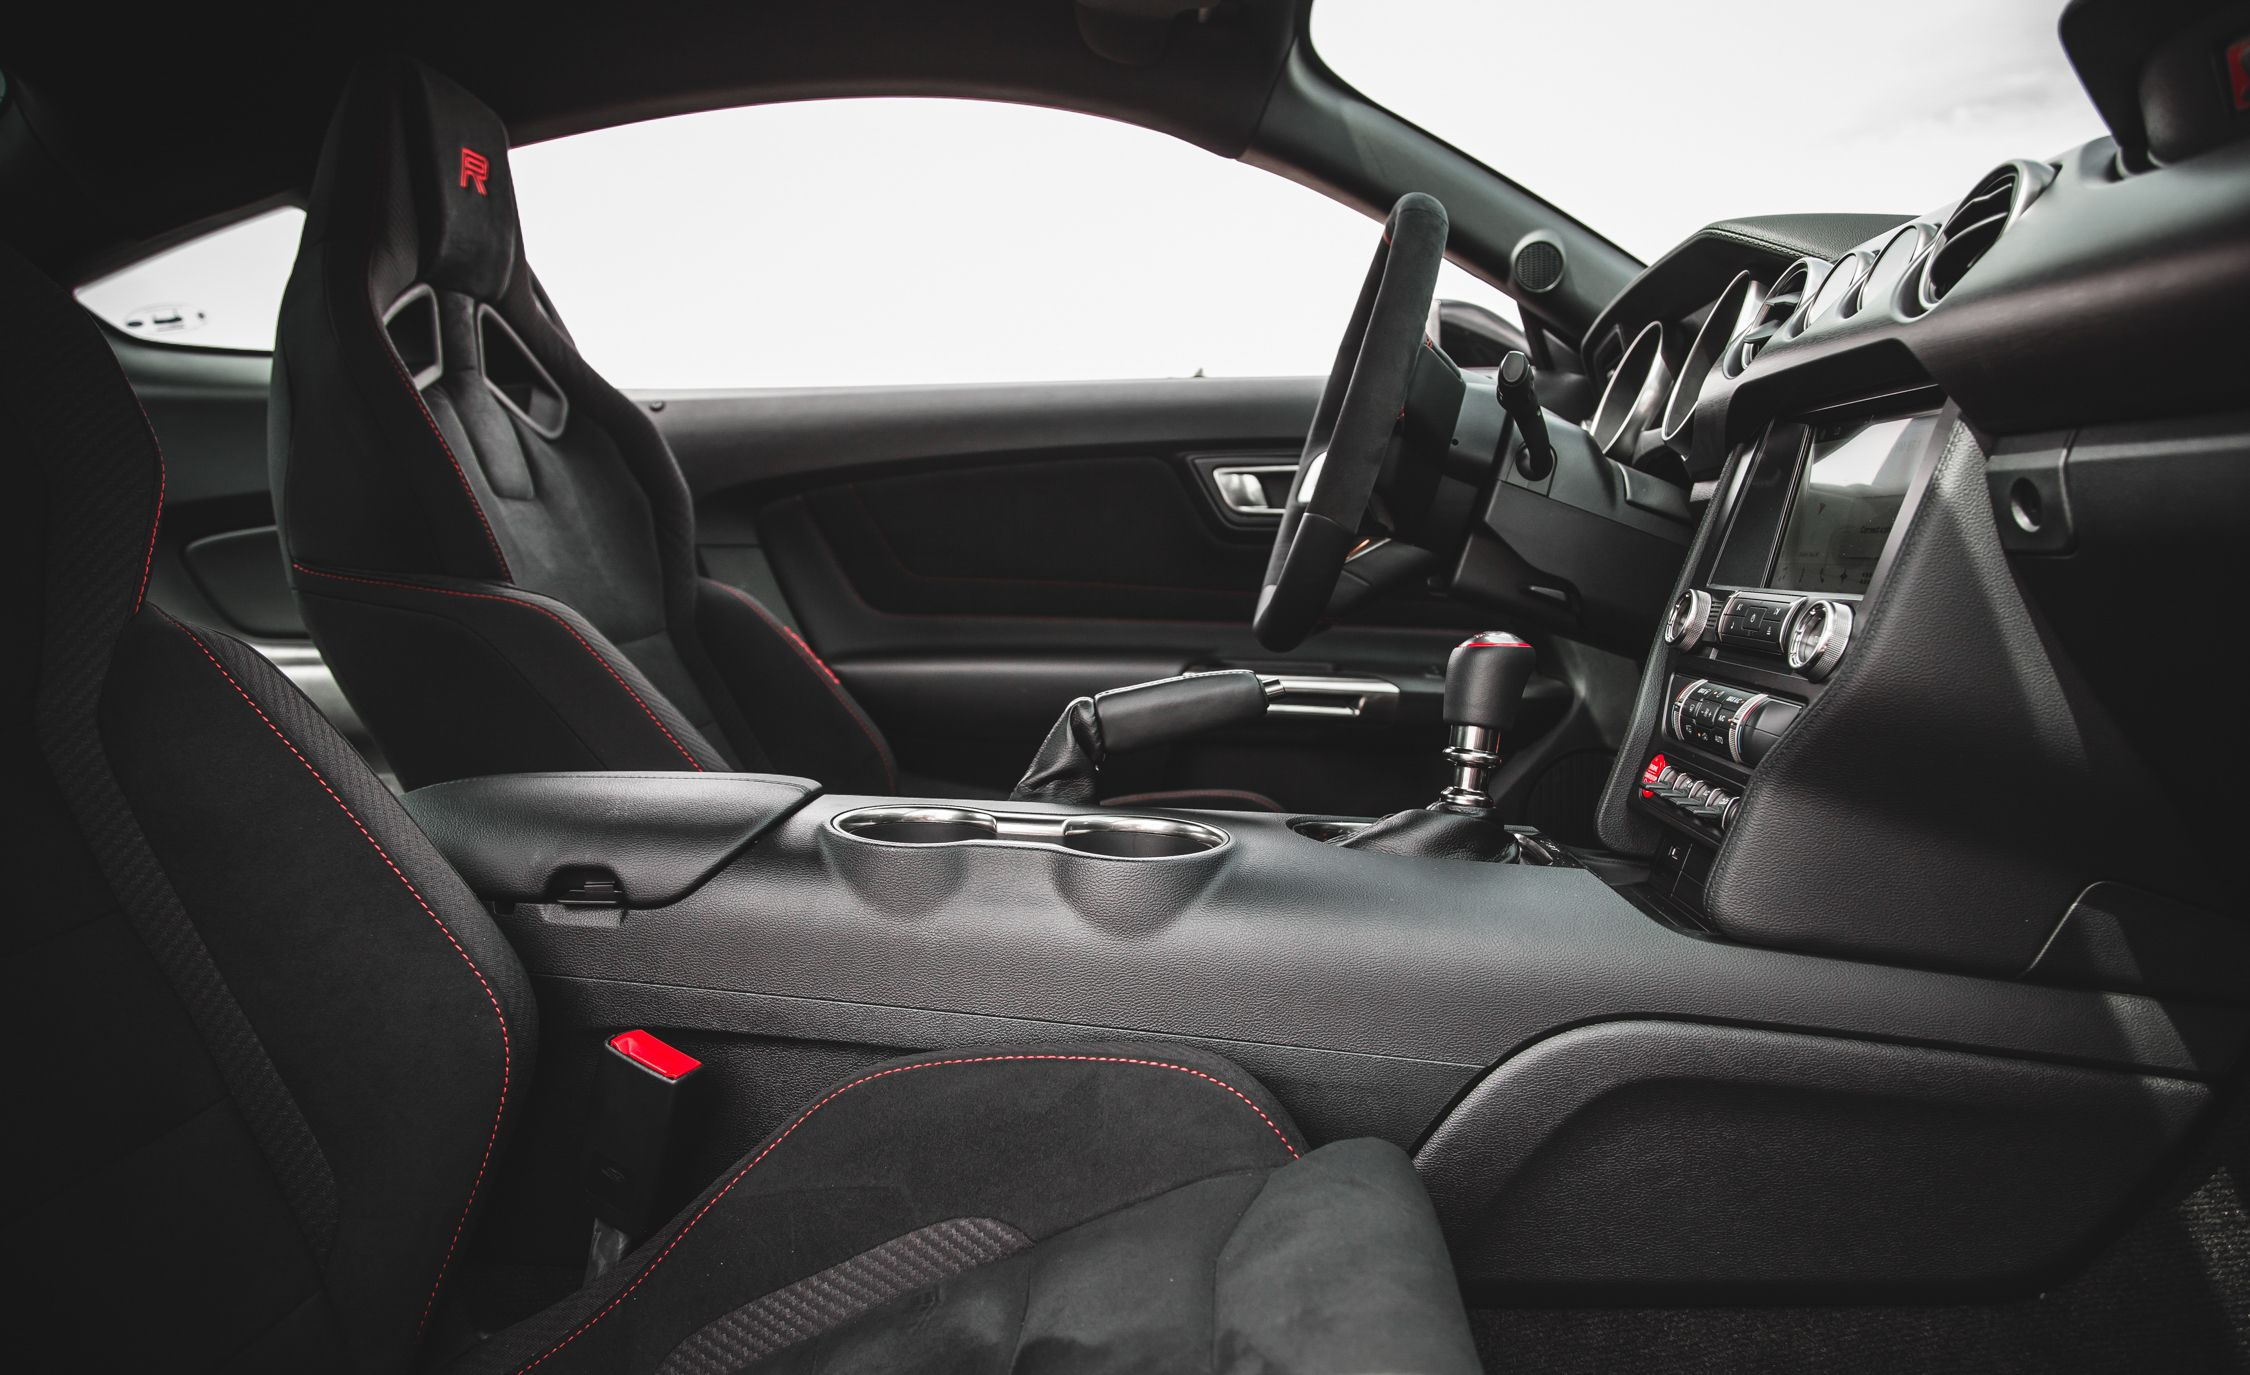 Ford Shelby Gt350r Interior >> 2016 Ford Mustang Shelby Gt350r Interior Mustang Ford Mustang